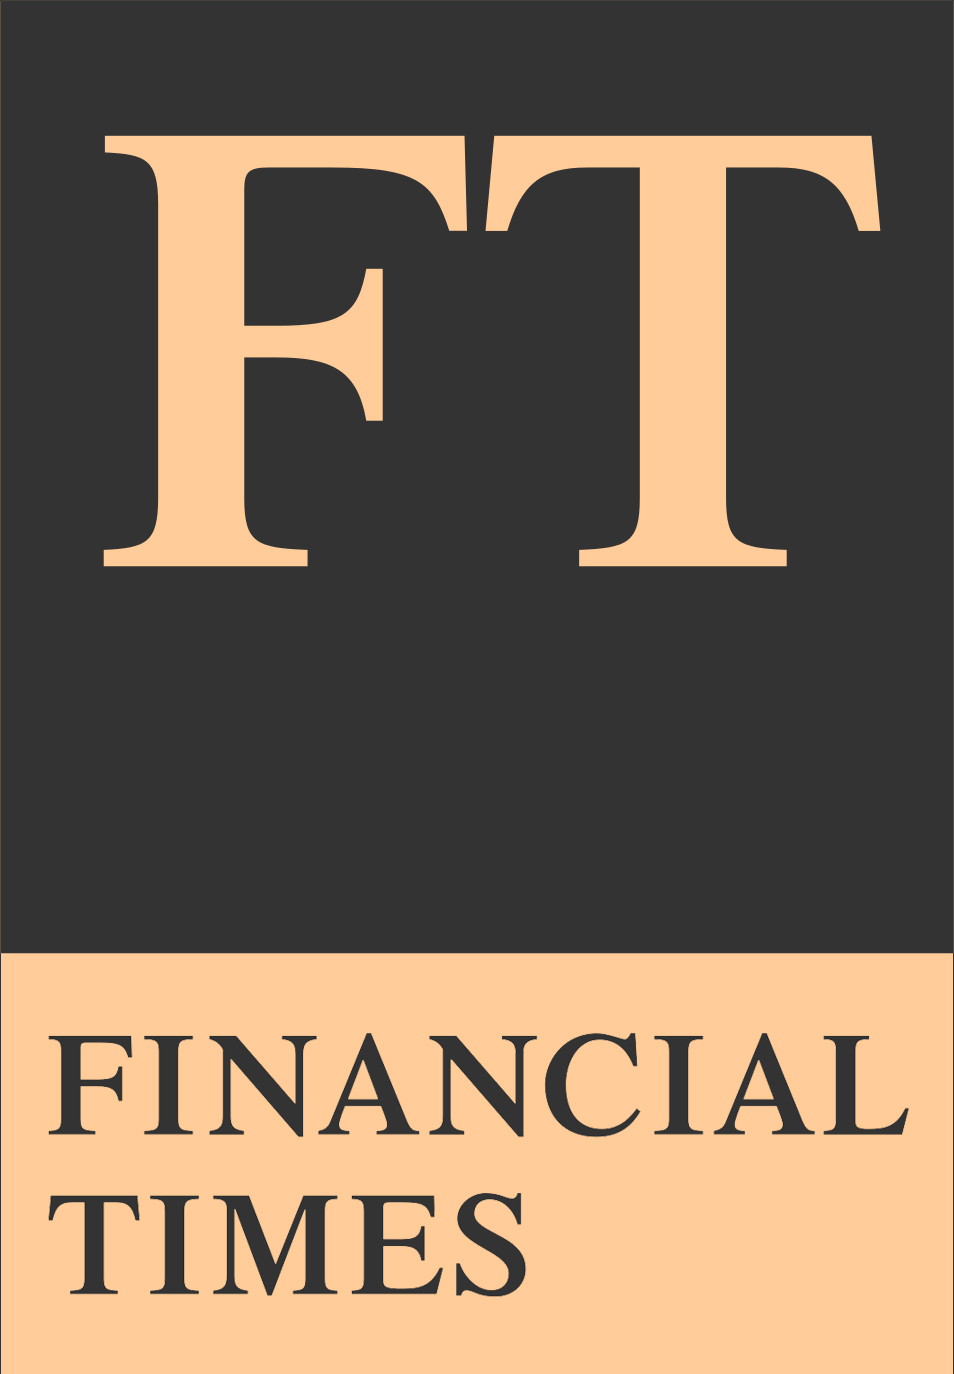 Financial_Times_corporate_logo_(pink).jpg